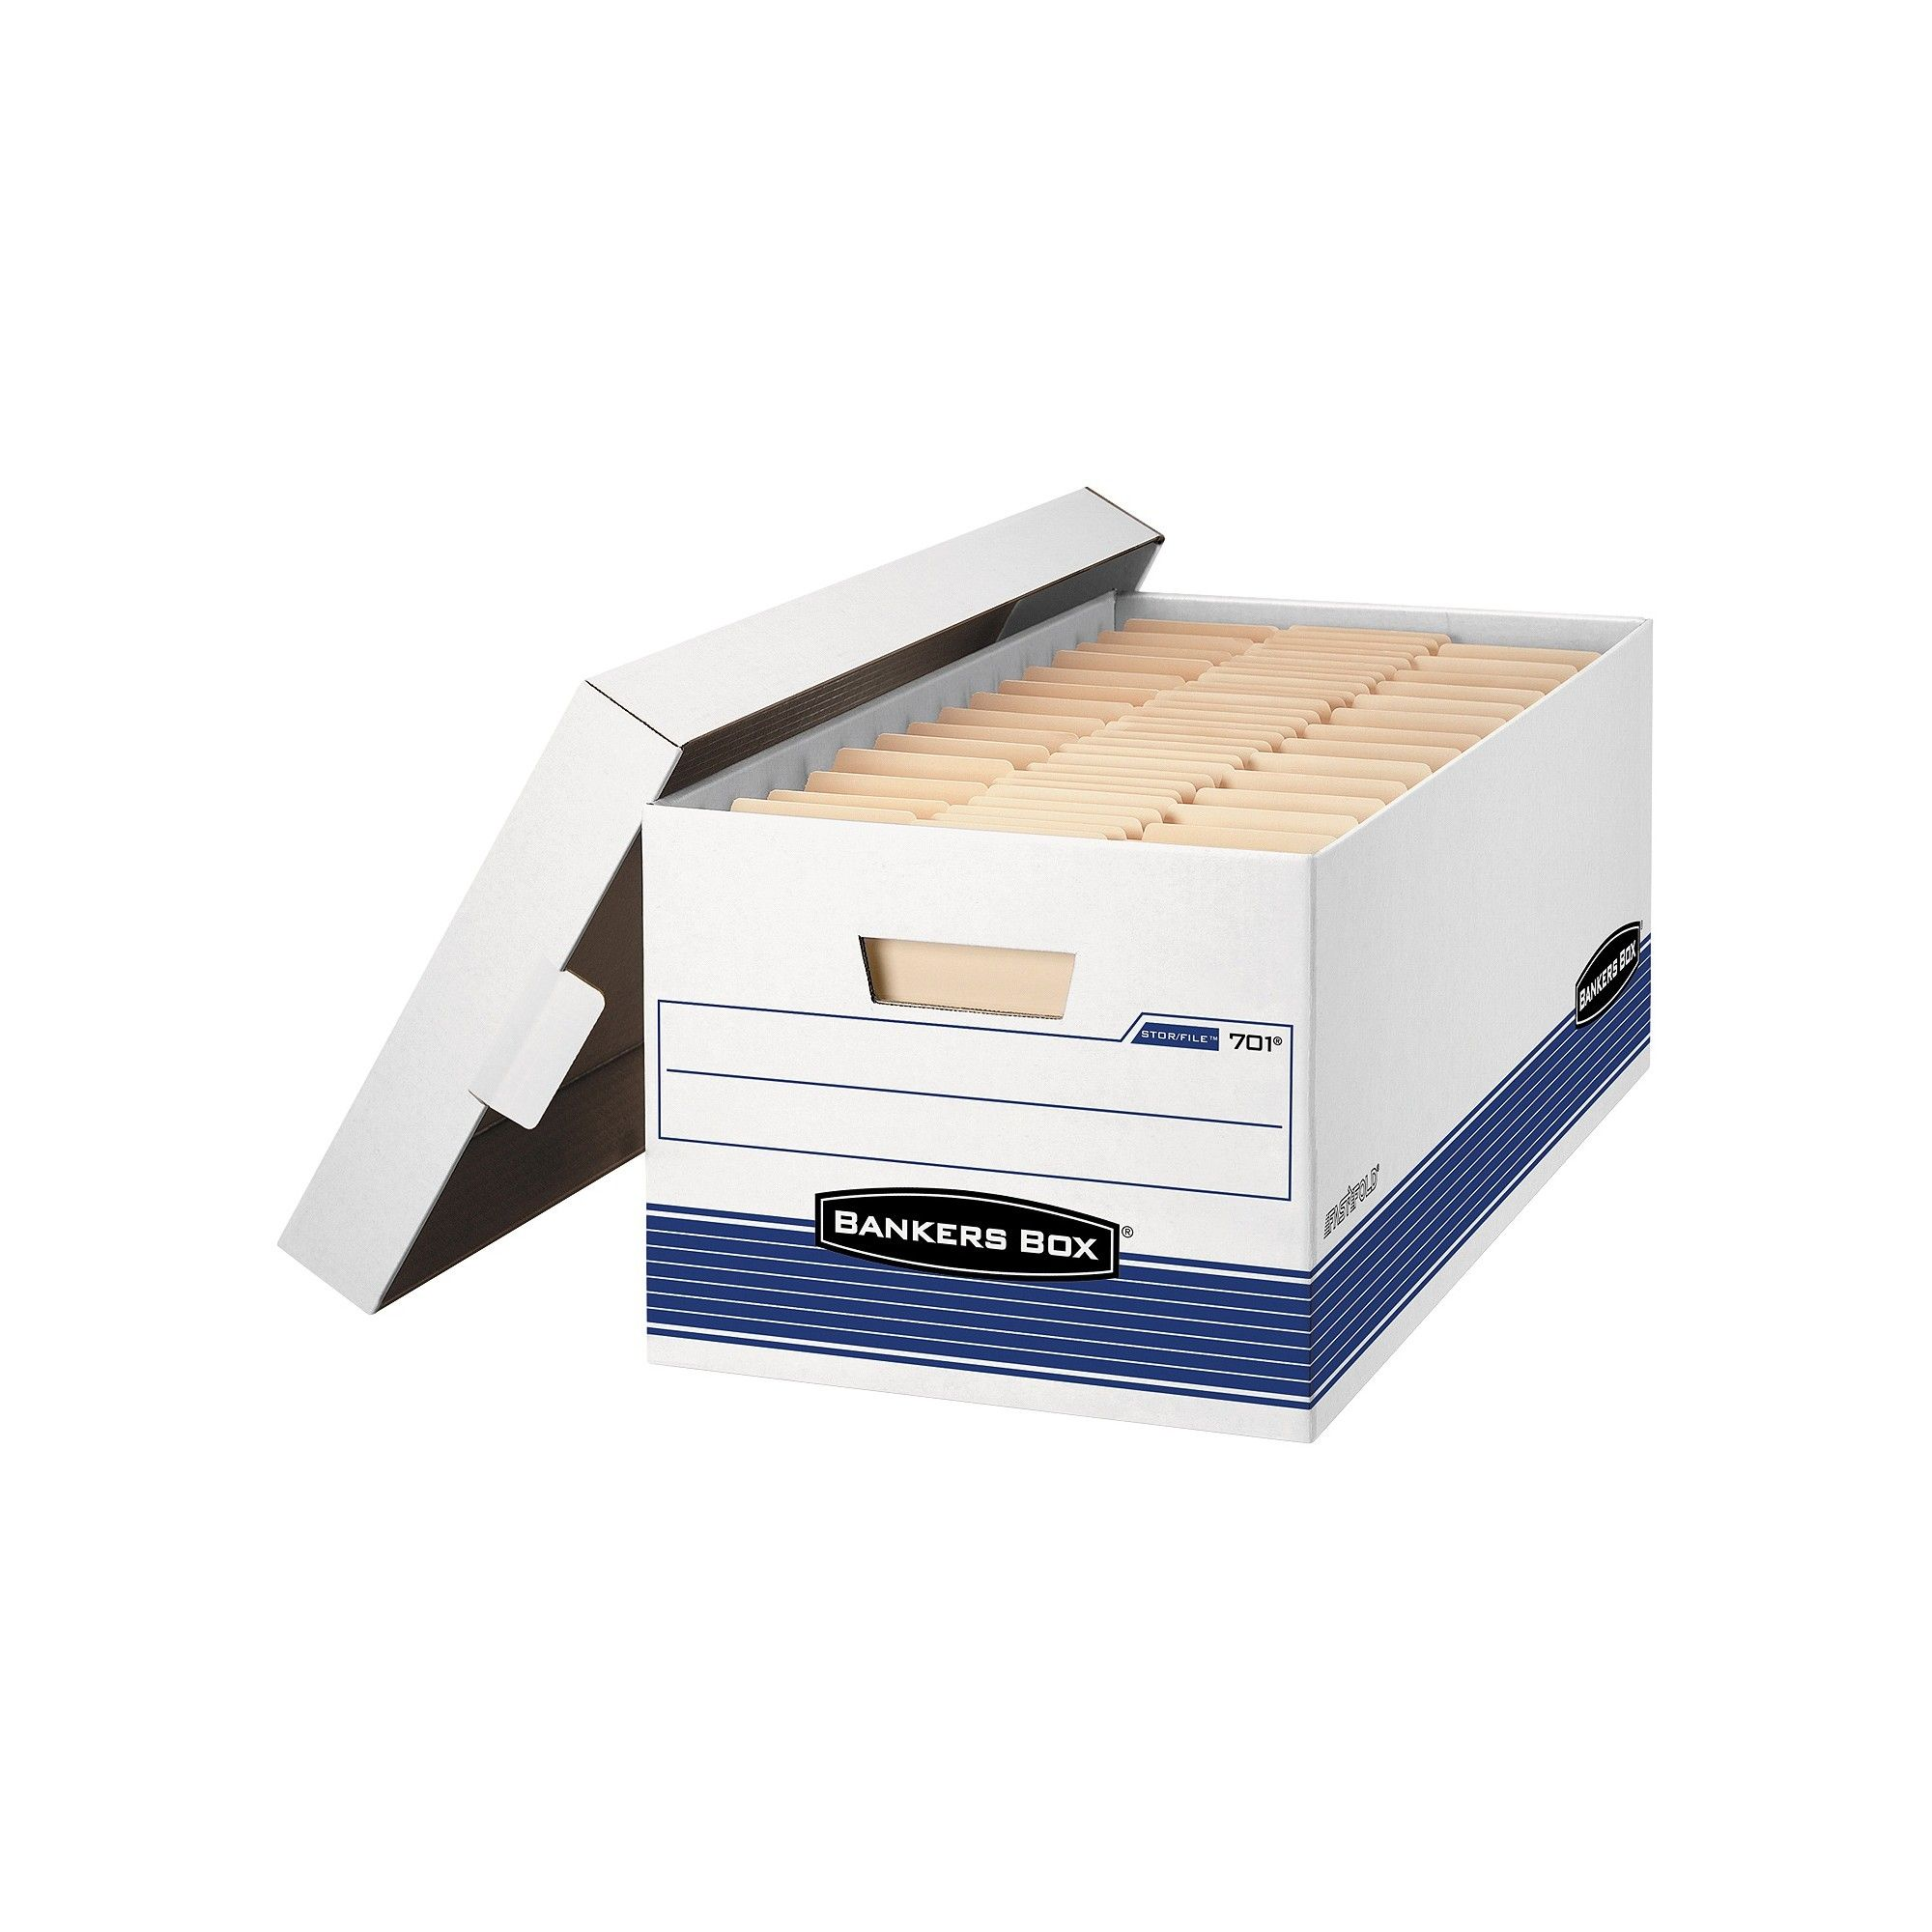 Bankers Box Stor/File Medium-Duty Storage Boxes With Lift